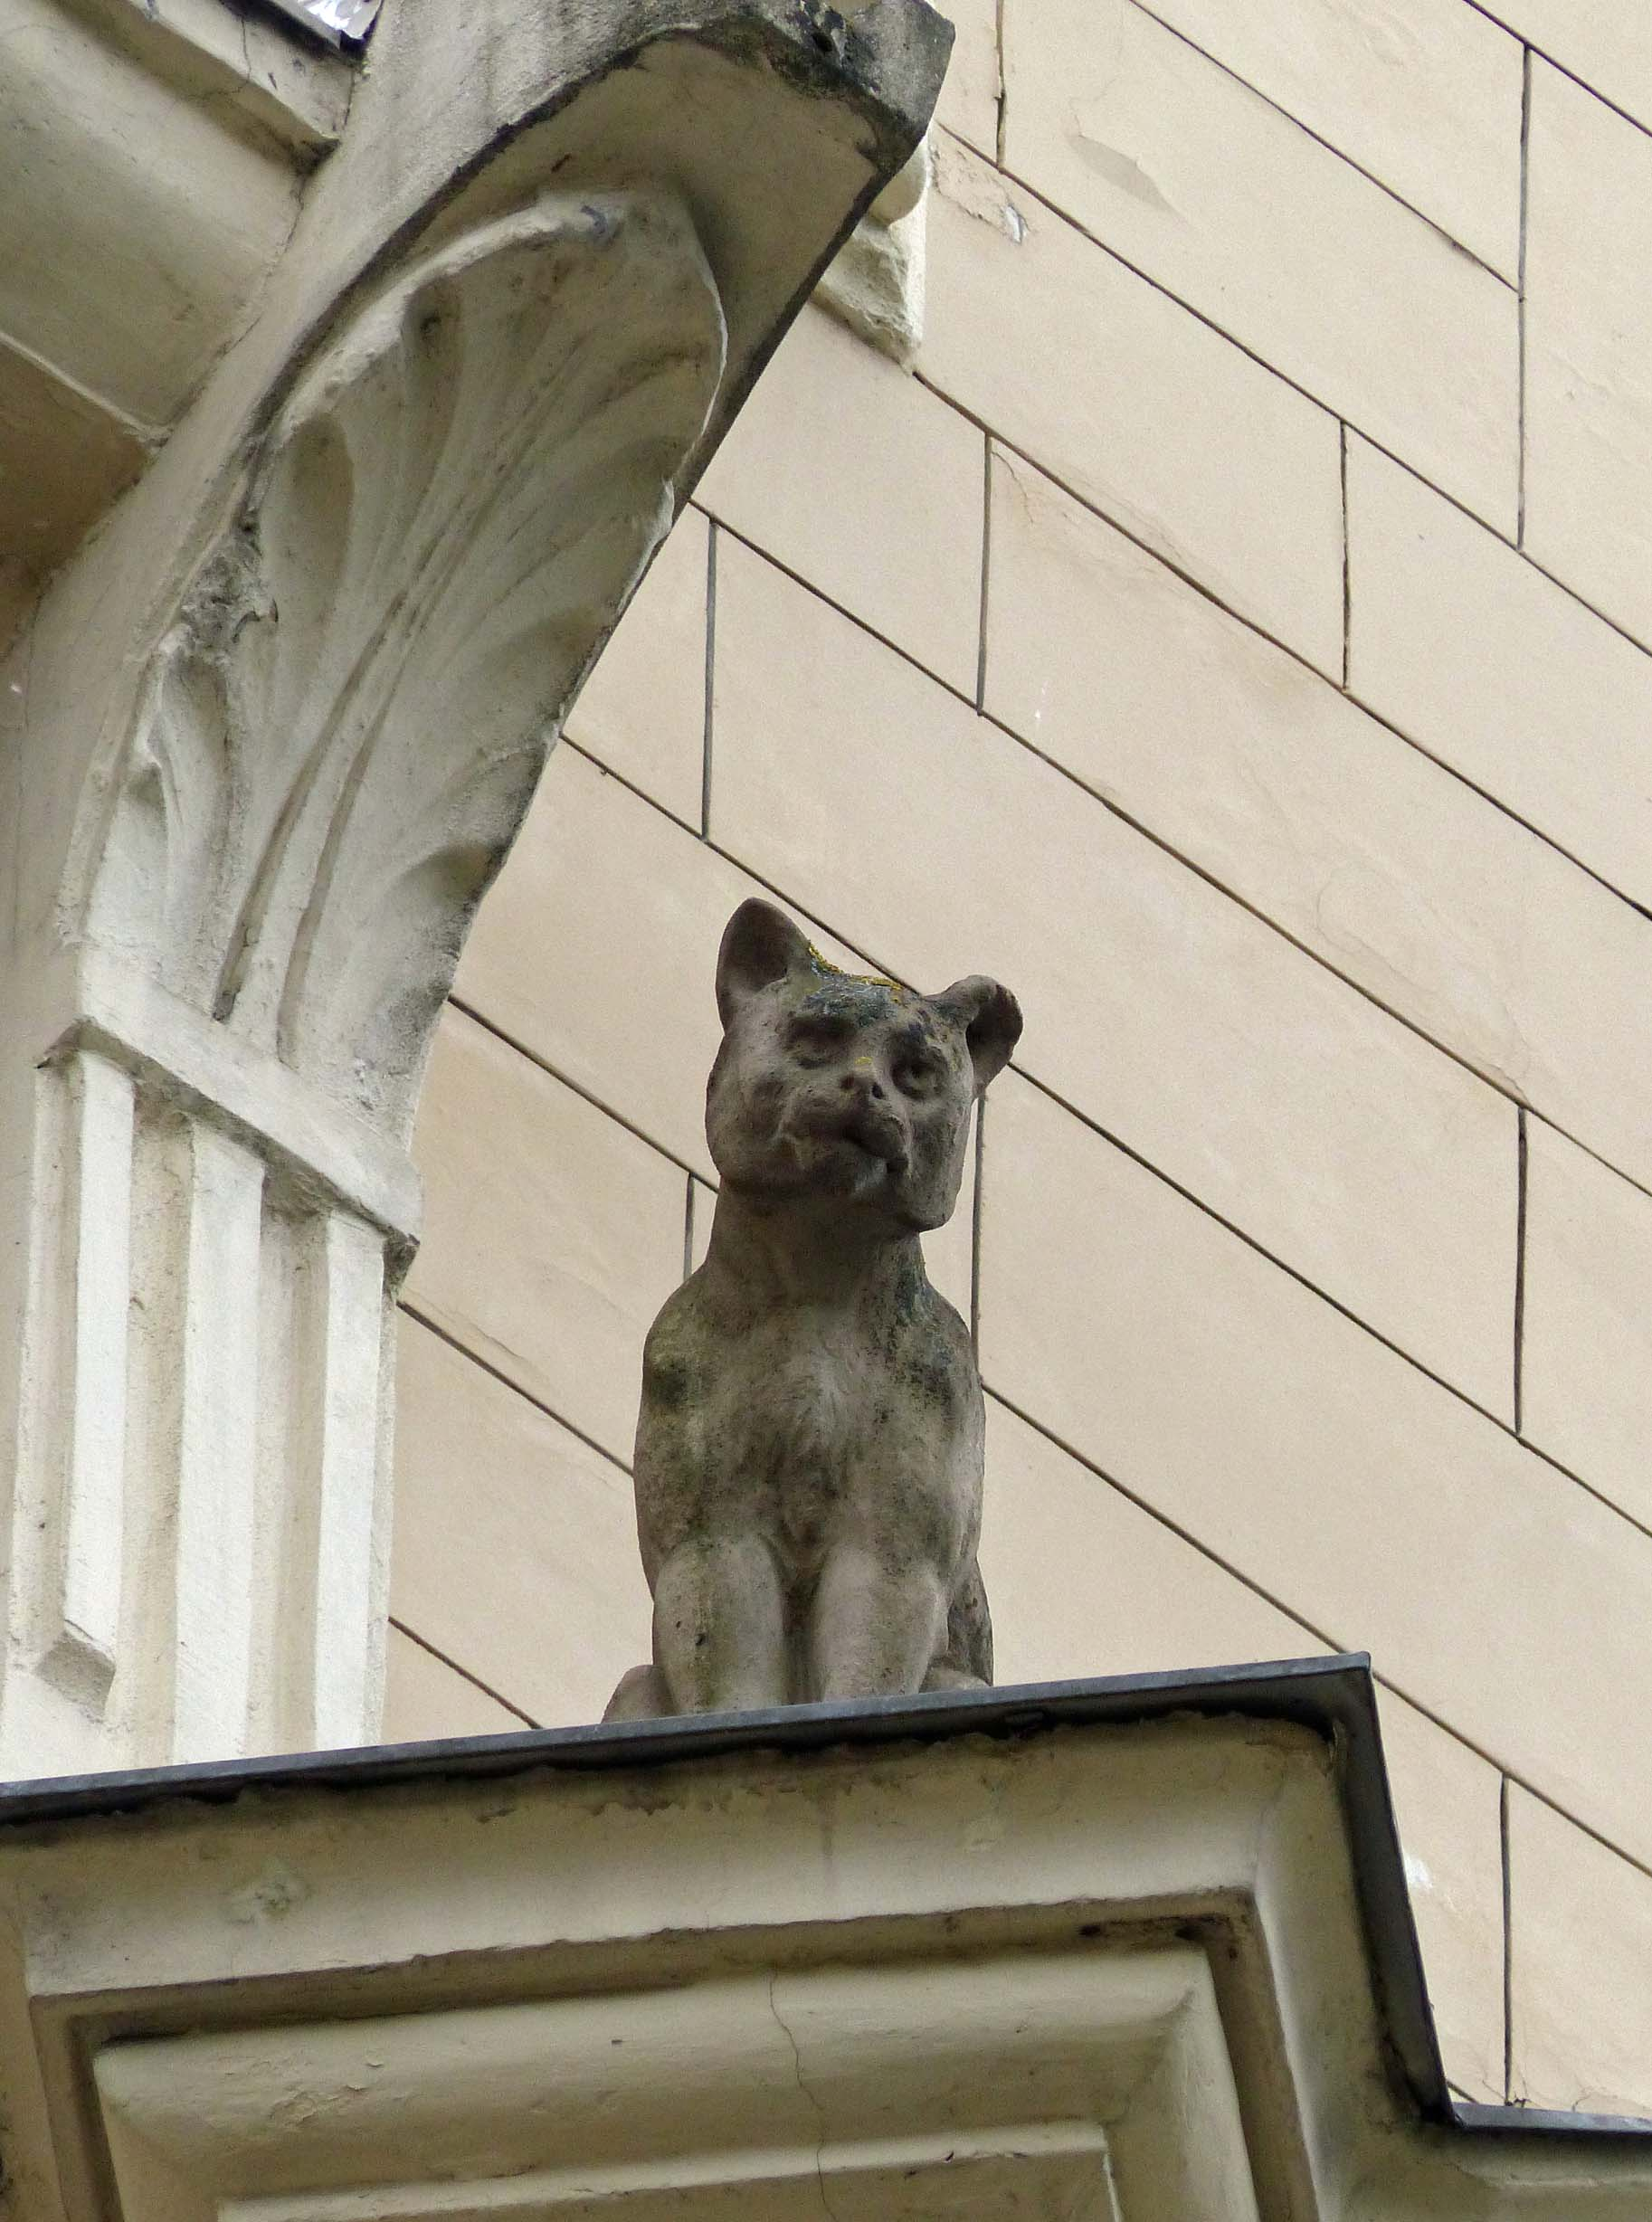 Small stone cat on a building ledge